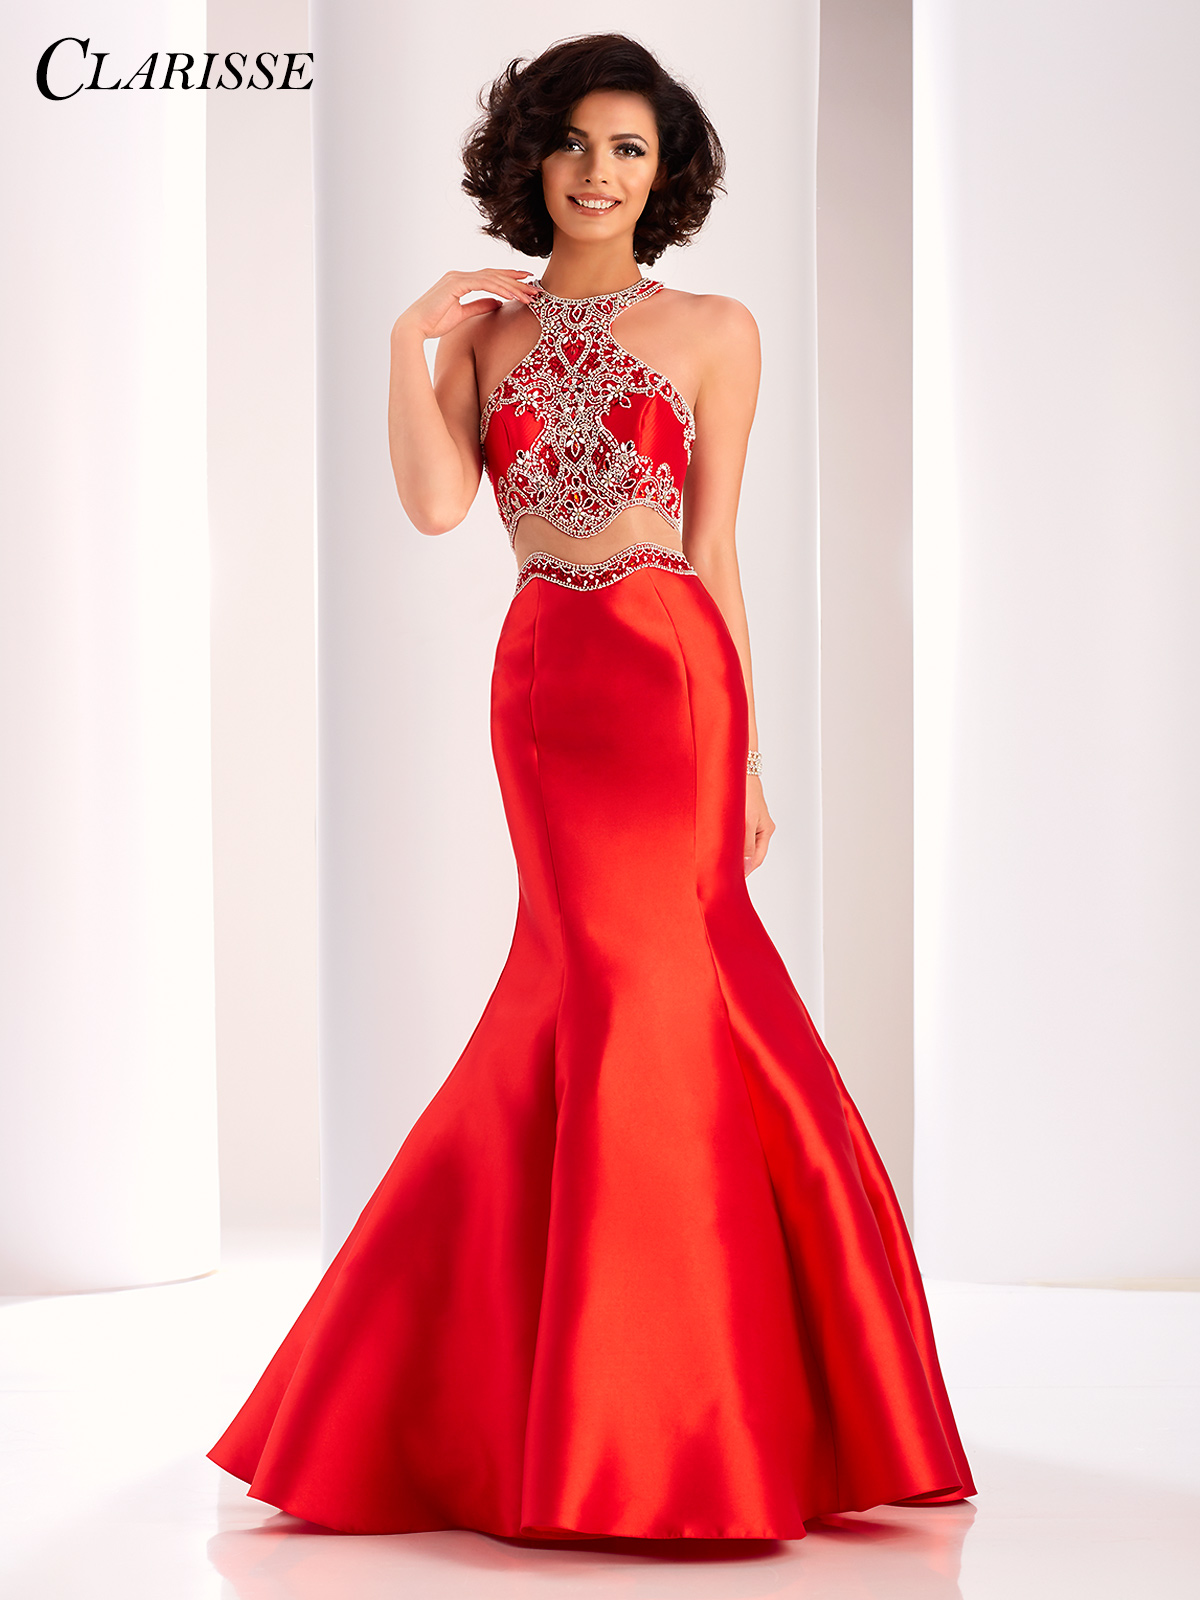 Clarisse Prom Dress 4861 | Promgirl.net